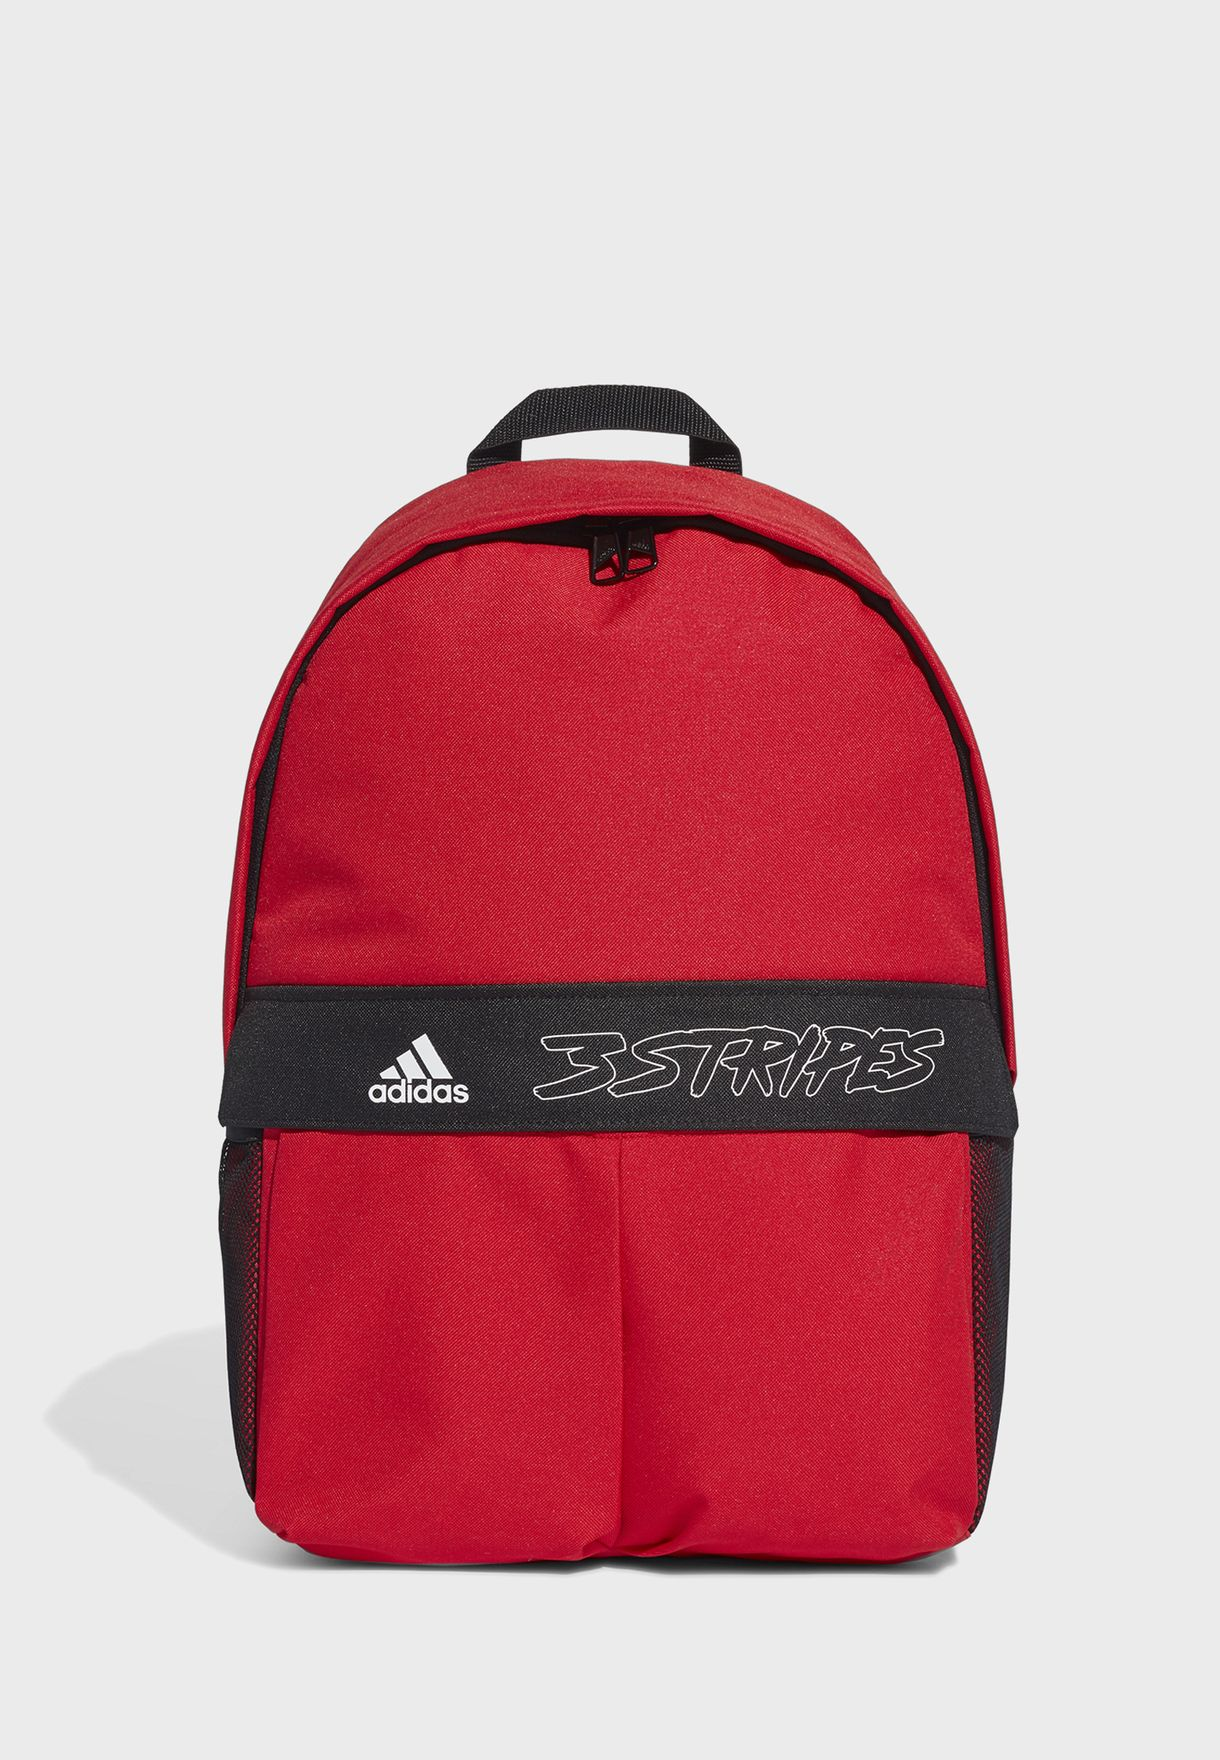 Classic Back To School Sports Unisex Backpack